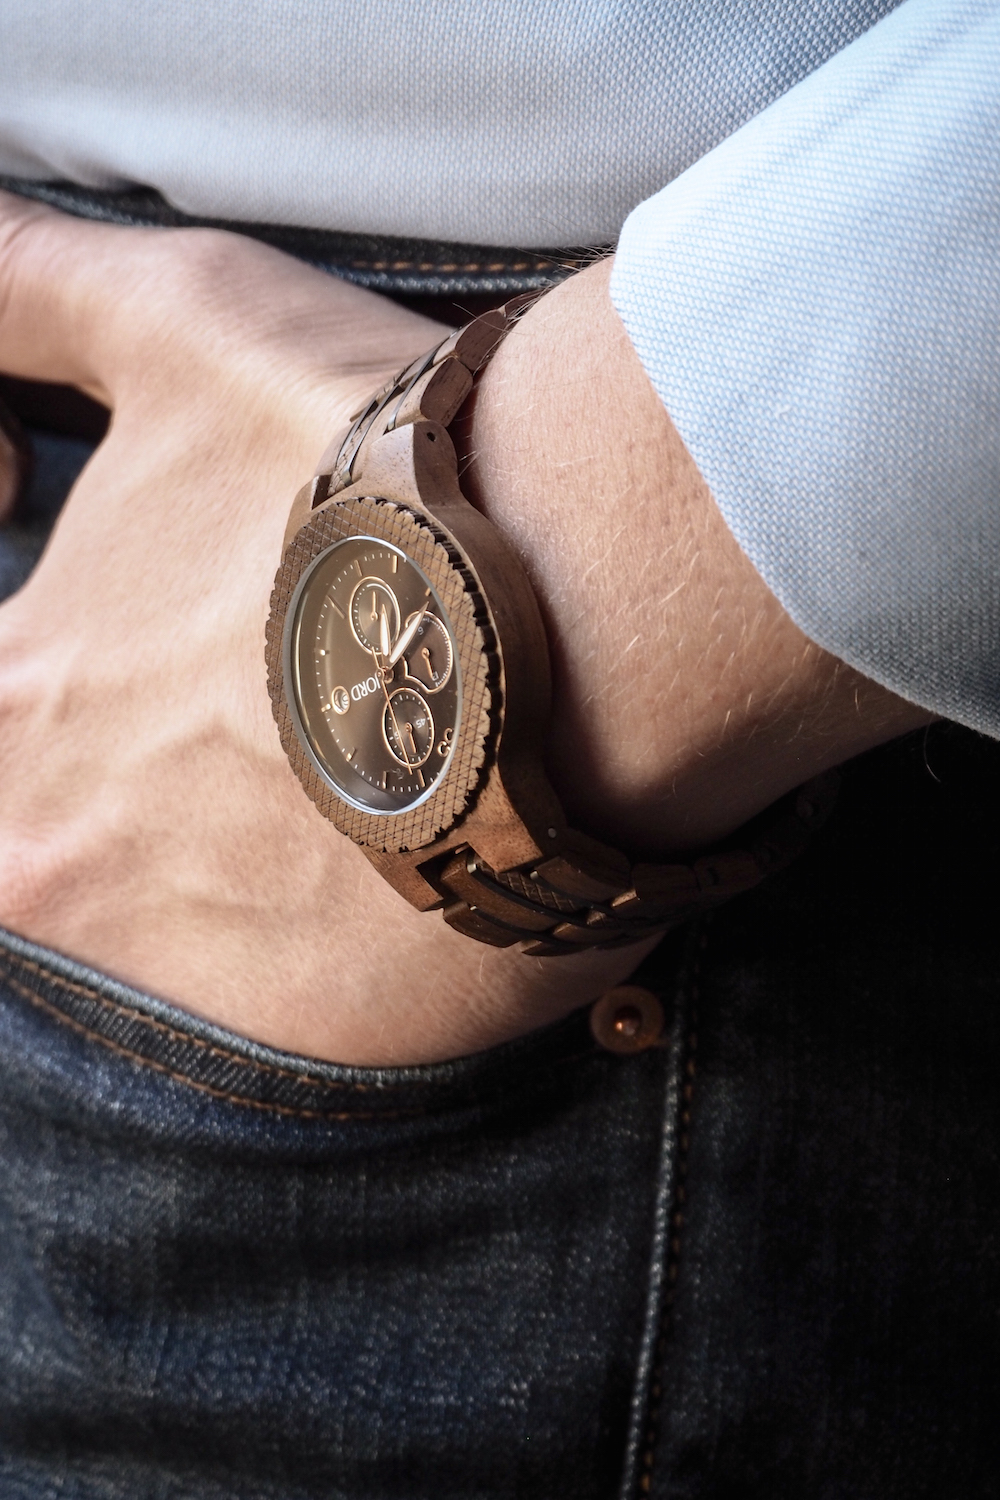 Wooden JORD Conway watch worn with dark blue jeans